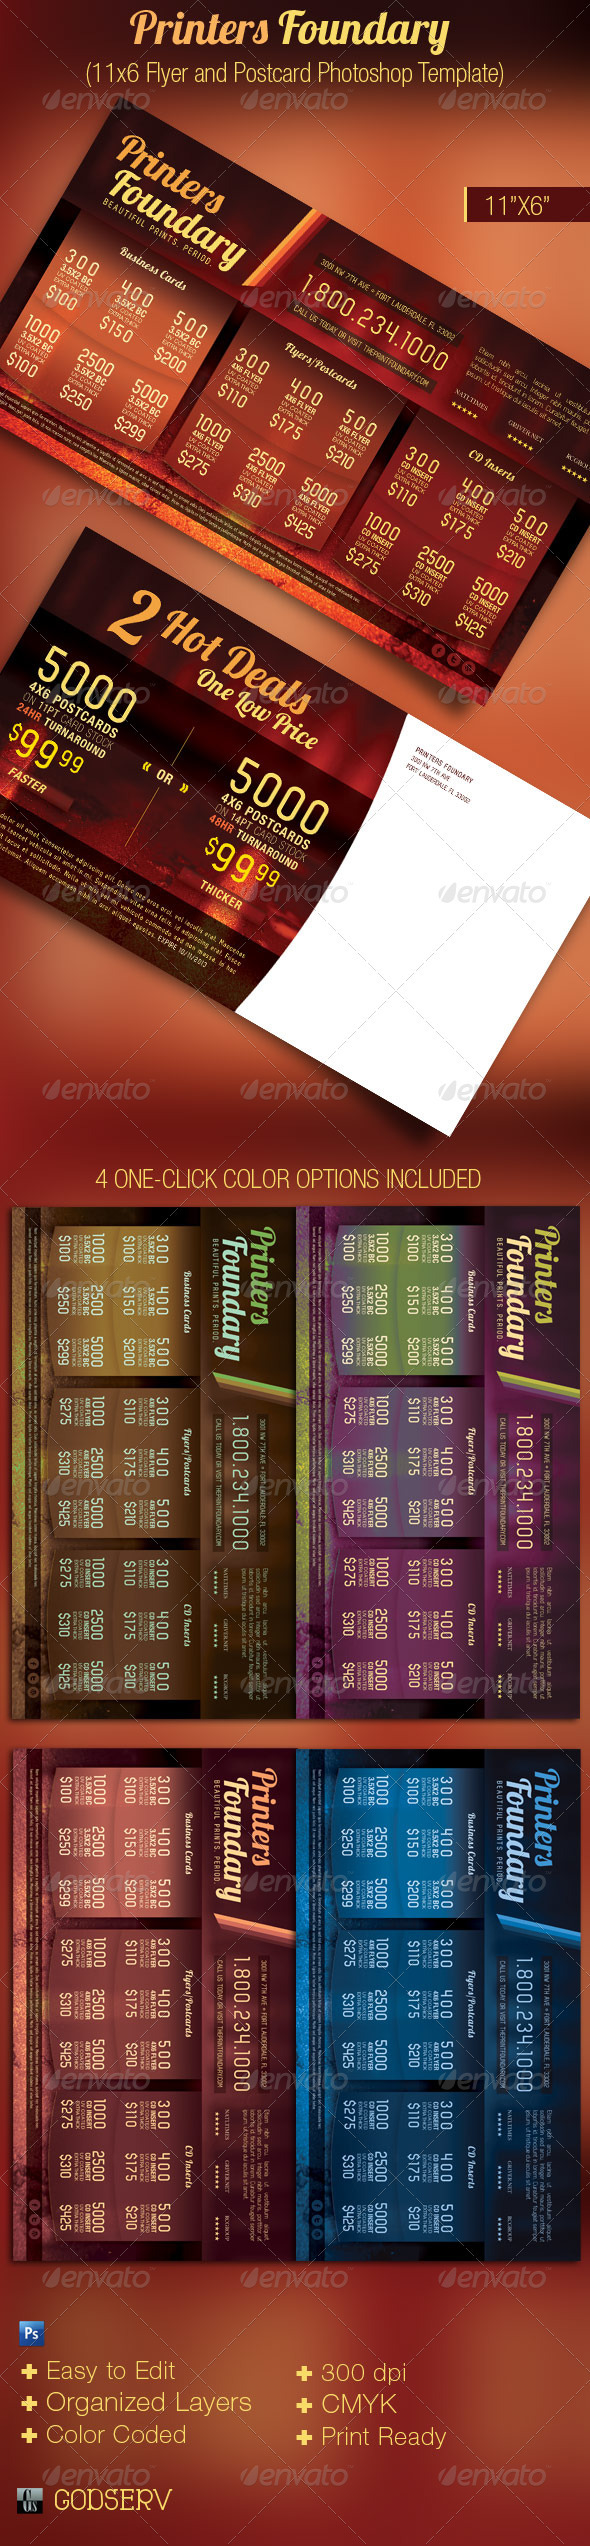 GraphicRiver Print Foundary Sales Flyer and Postcard Template 2660248